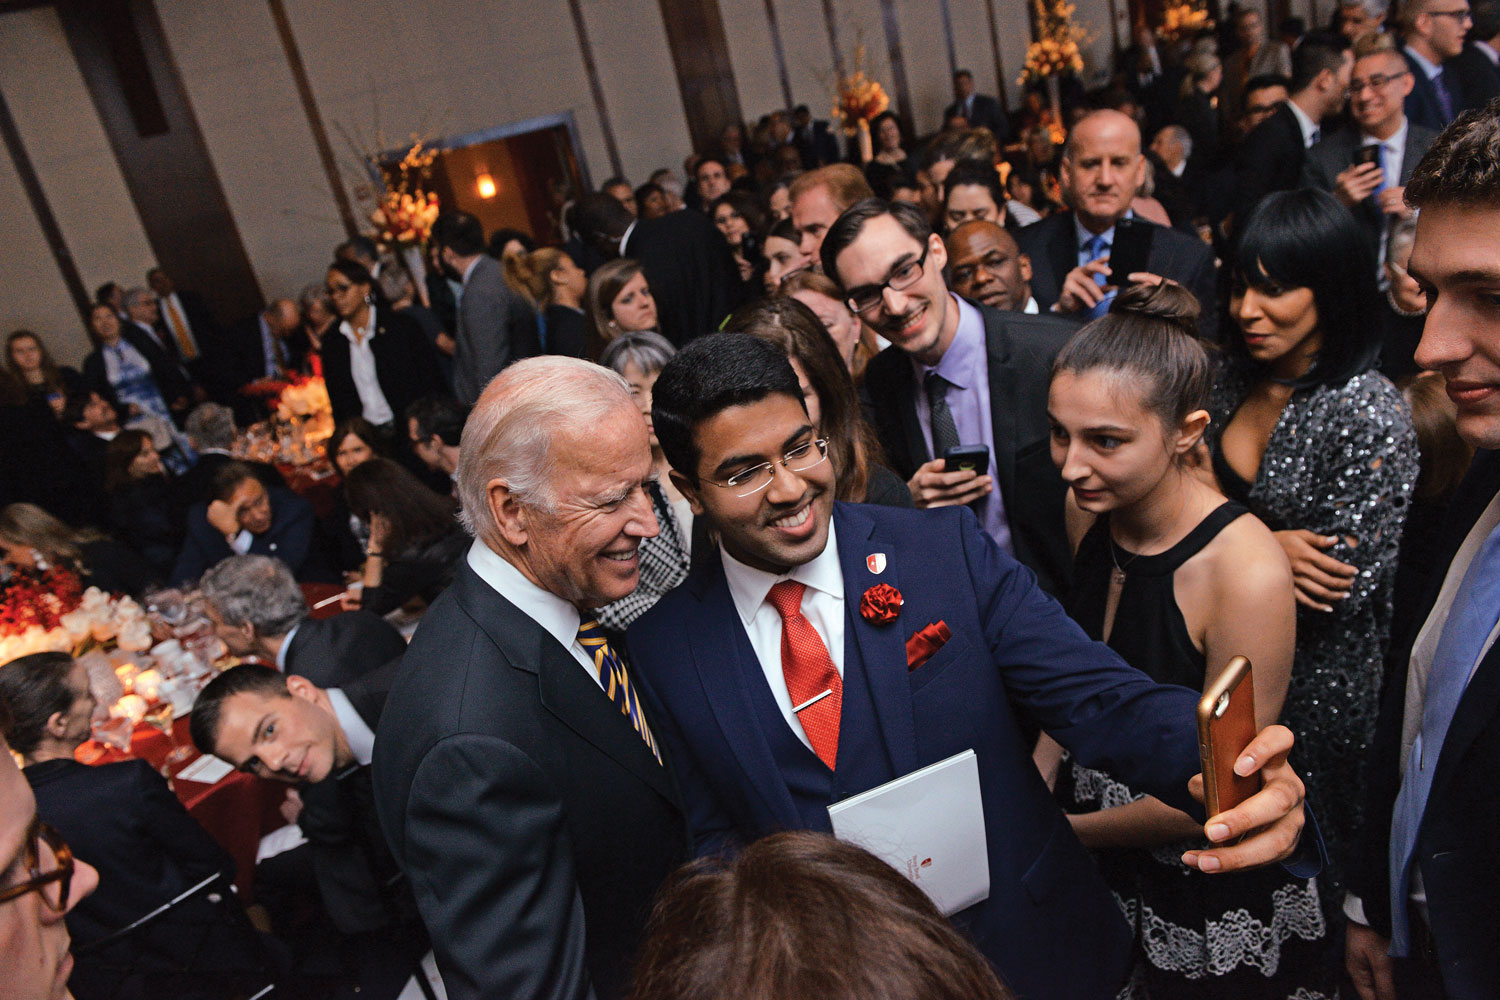 In recognition of his dedication to the fight against cancer, Joseph R. Biden Jr., 47th Vice President of the United States of America, was honored at the Stars of Stony Brook, Stony Brook University's annual fundraising gala at Chelsea Piers in Manhattan on April 19, 2017.